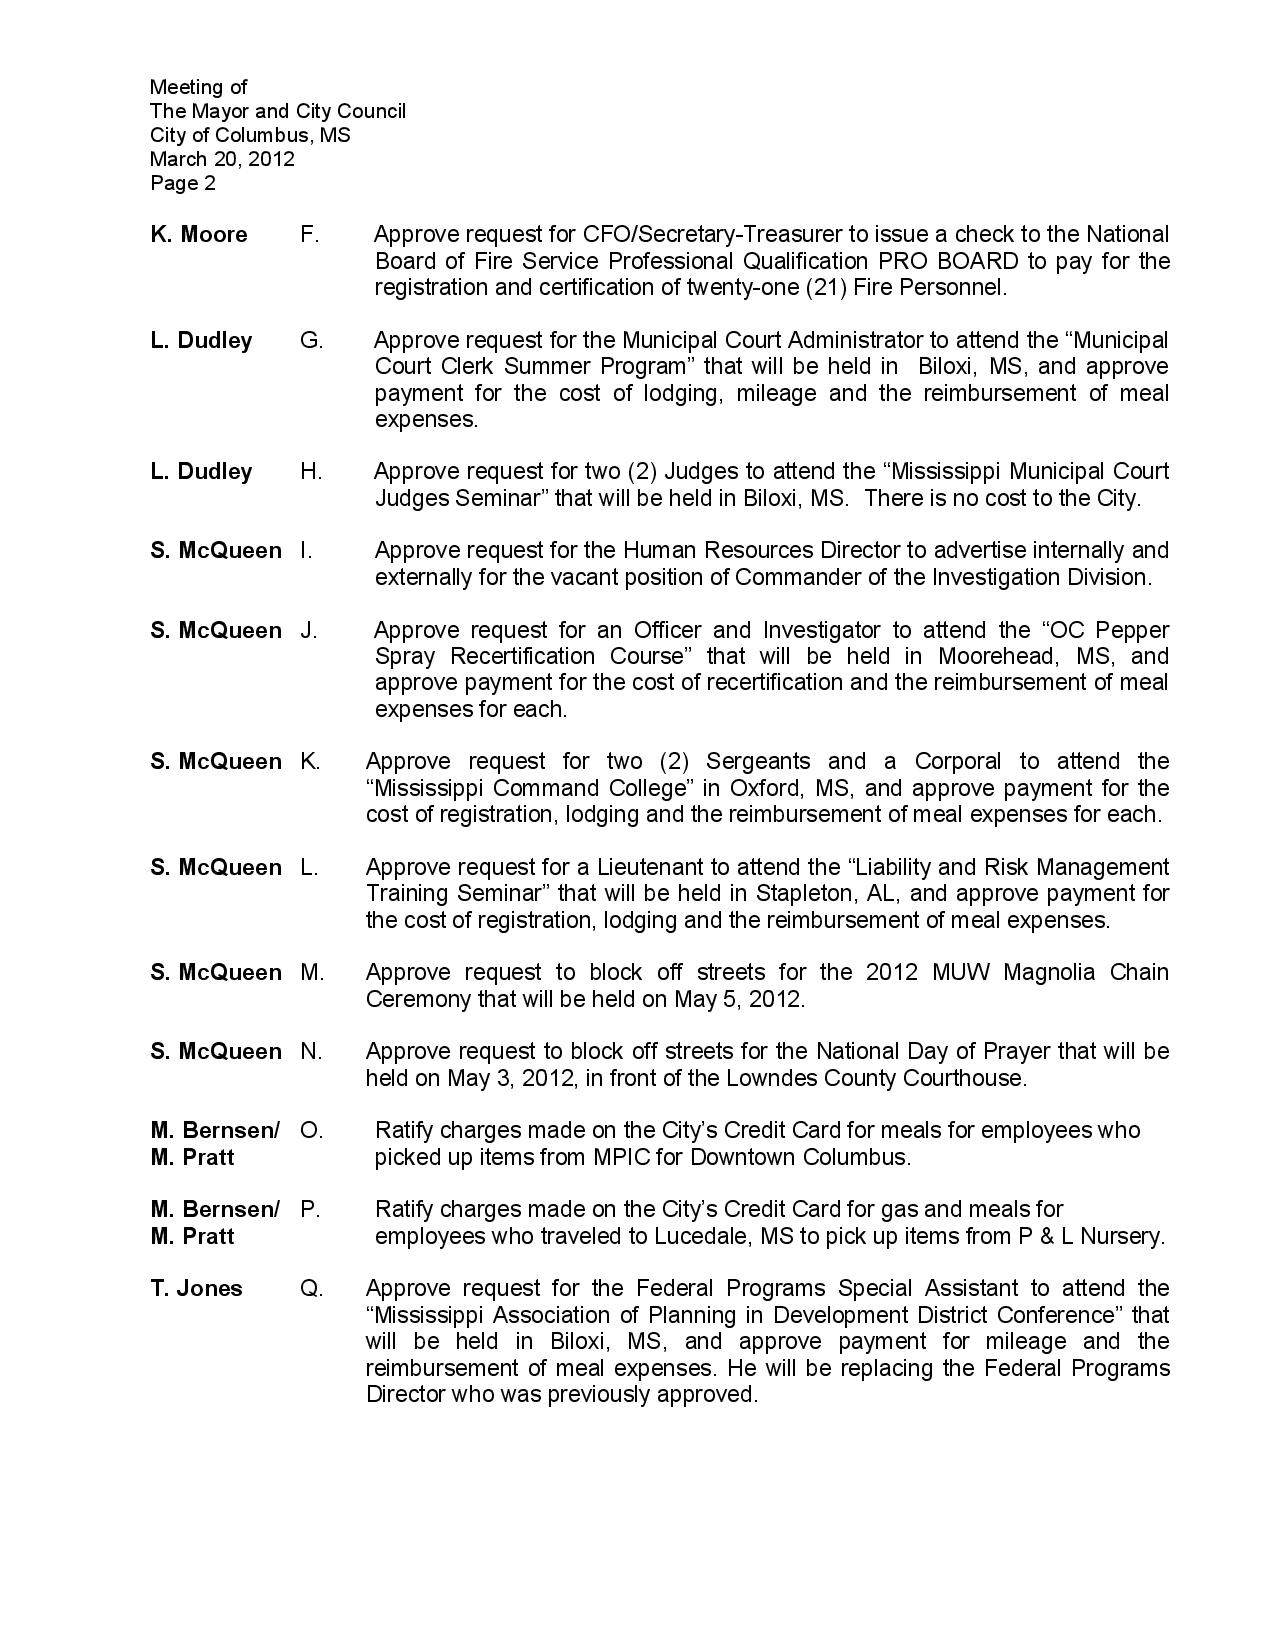 Columbus city council meeting agenda for april 17 2012 special 1betcityfo Choice Image